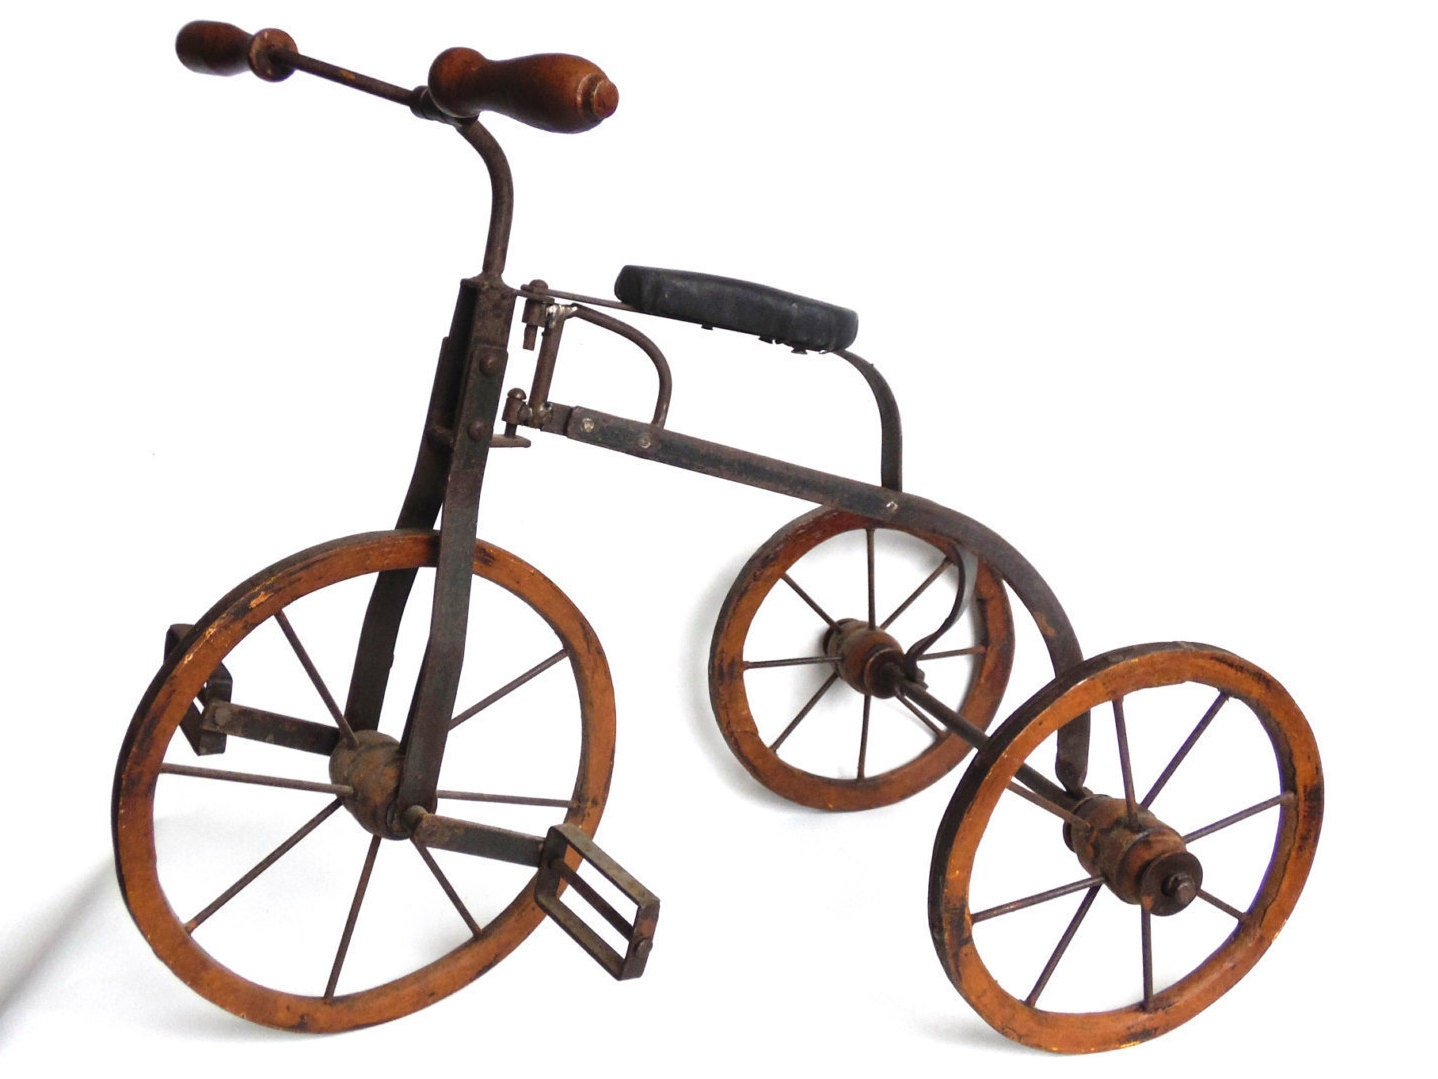 Makers Of Antique Tricycles : Tricycle metal wooden toy antique doll replica